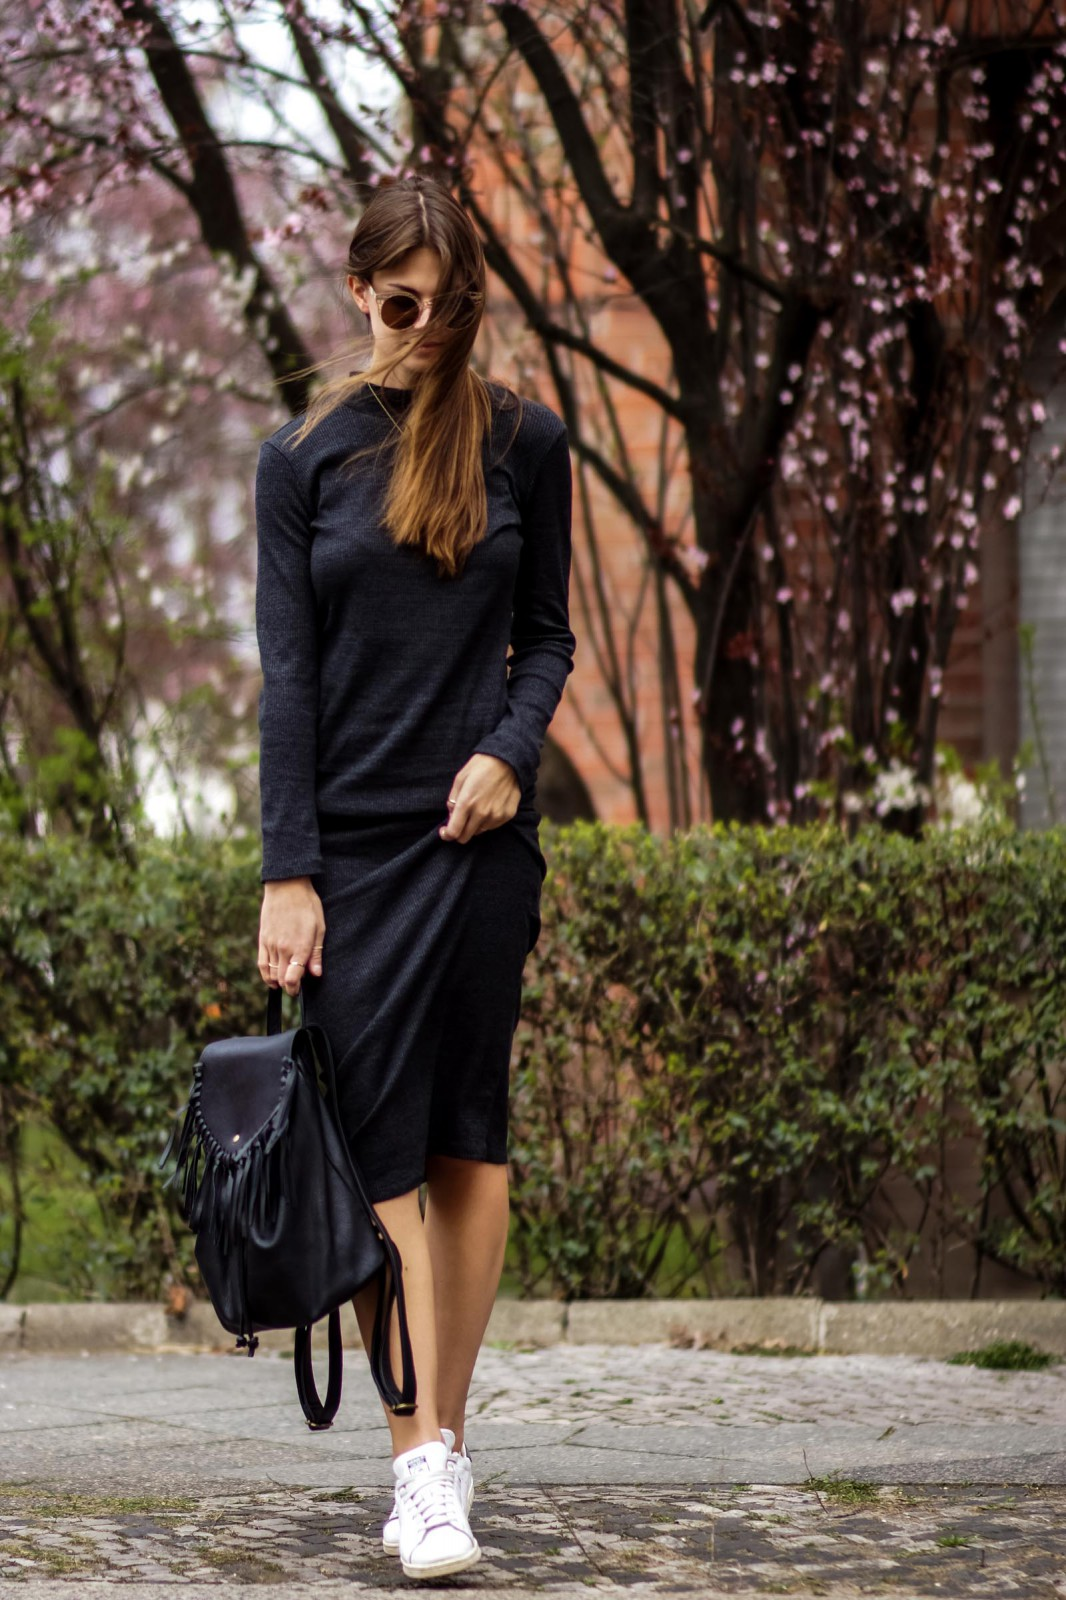 Mididress and sneakers